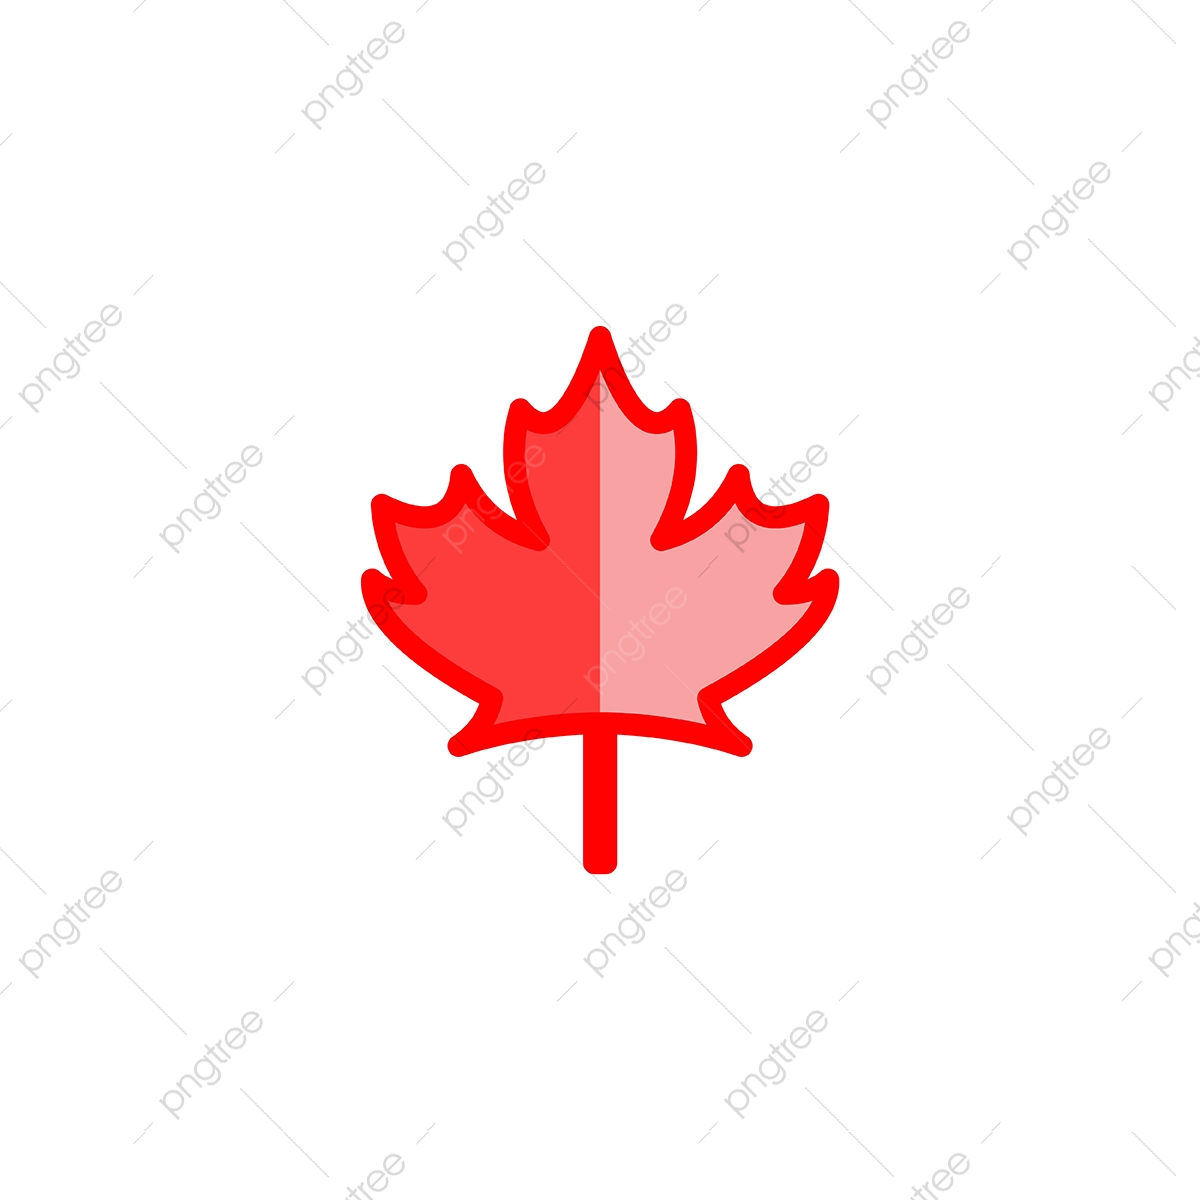 Canadian Red Maple Leaf Logo Designs Inspiration Isolated On Whi Logo Icons Leaf Icons Inspiration Icons Png And Vector With Transparent Background For Free Download